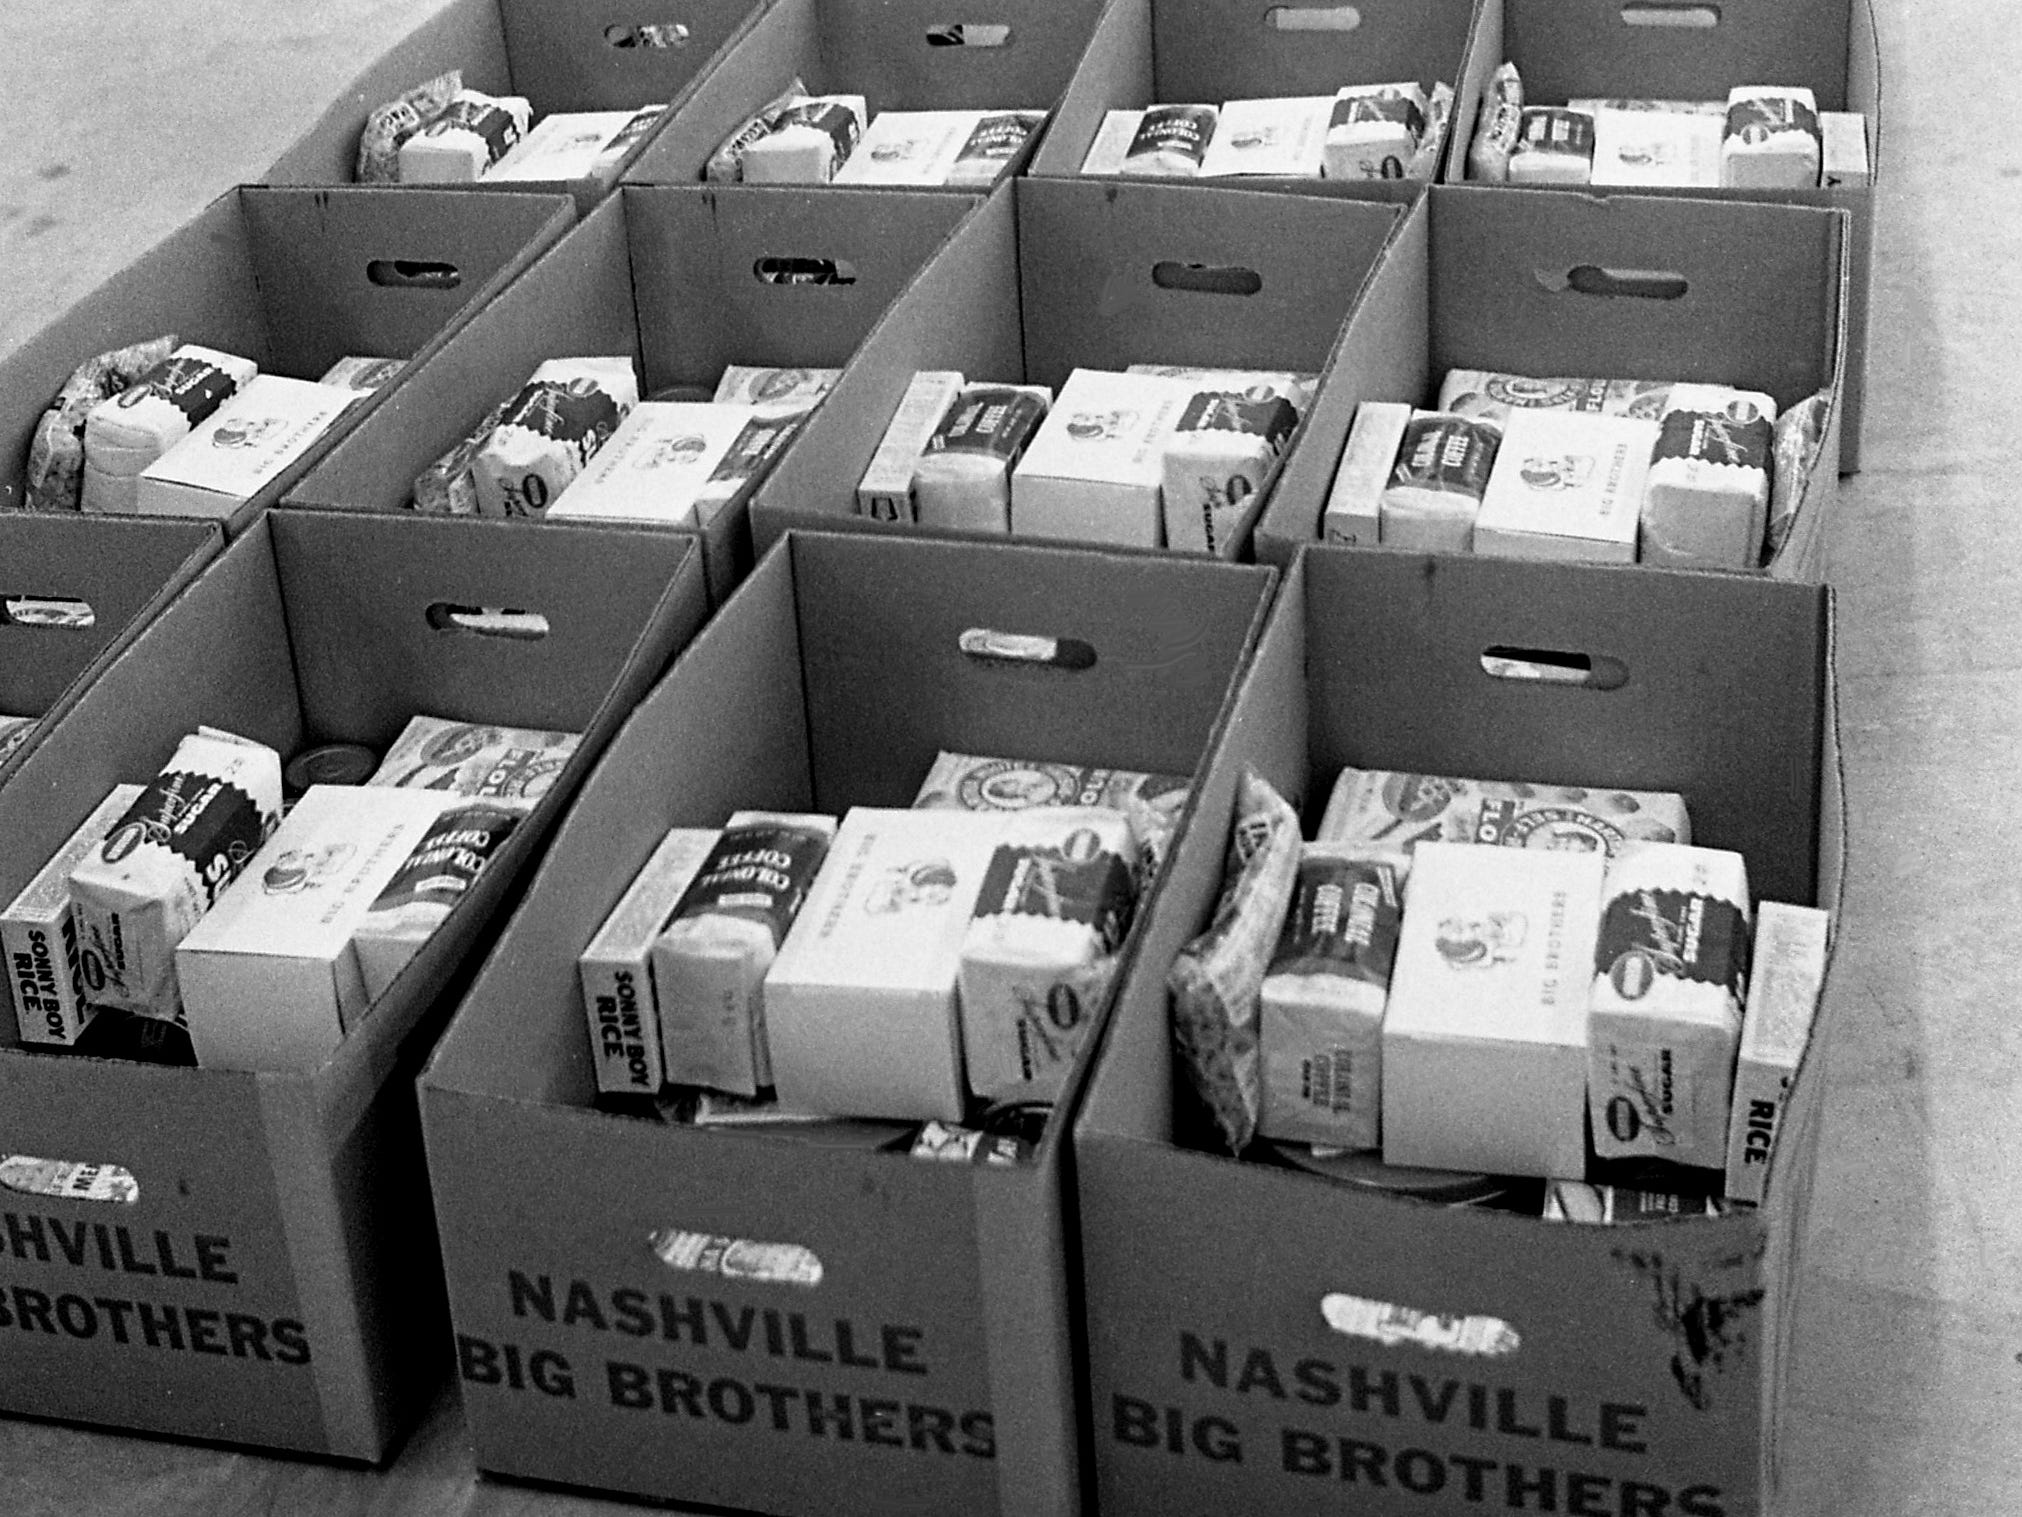 Some of the estimated 3,000 baskets Big Brothers and volunteers have prepared at the Tennessee State Fairgrounds Dec. 20, 1968 and will be distribute to needy families in Nashville for the Christmas holiday.